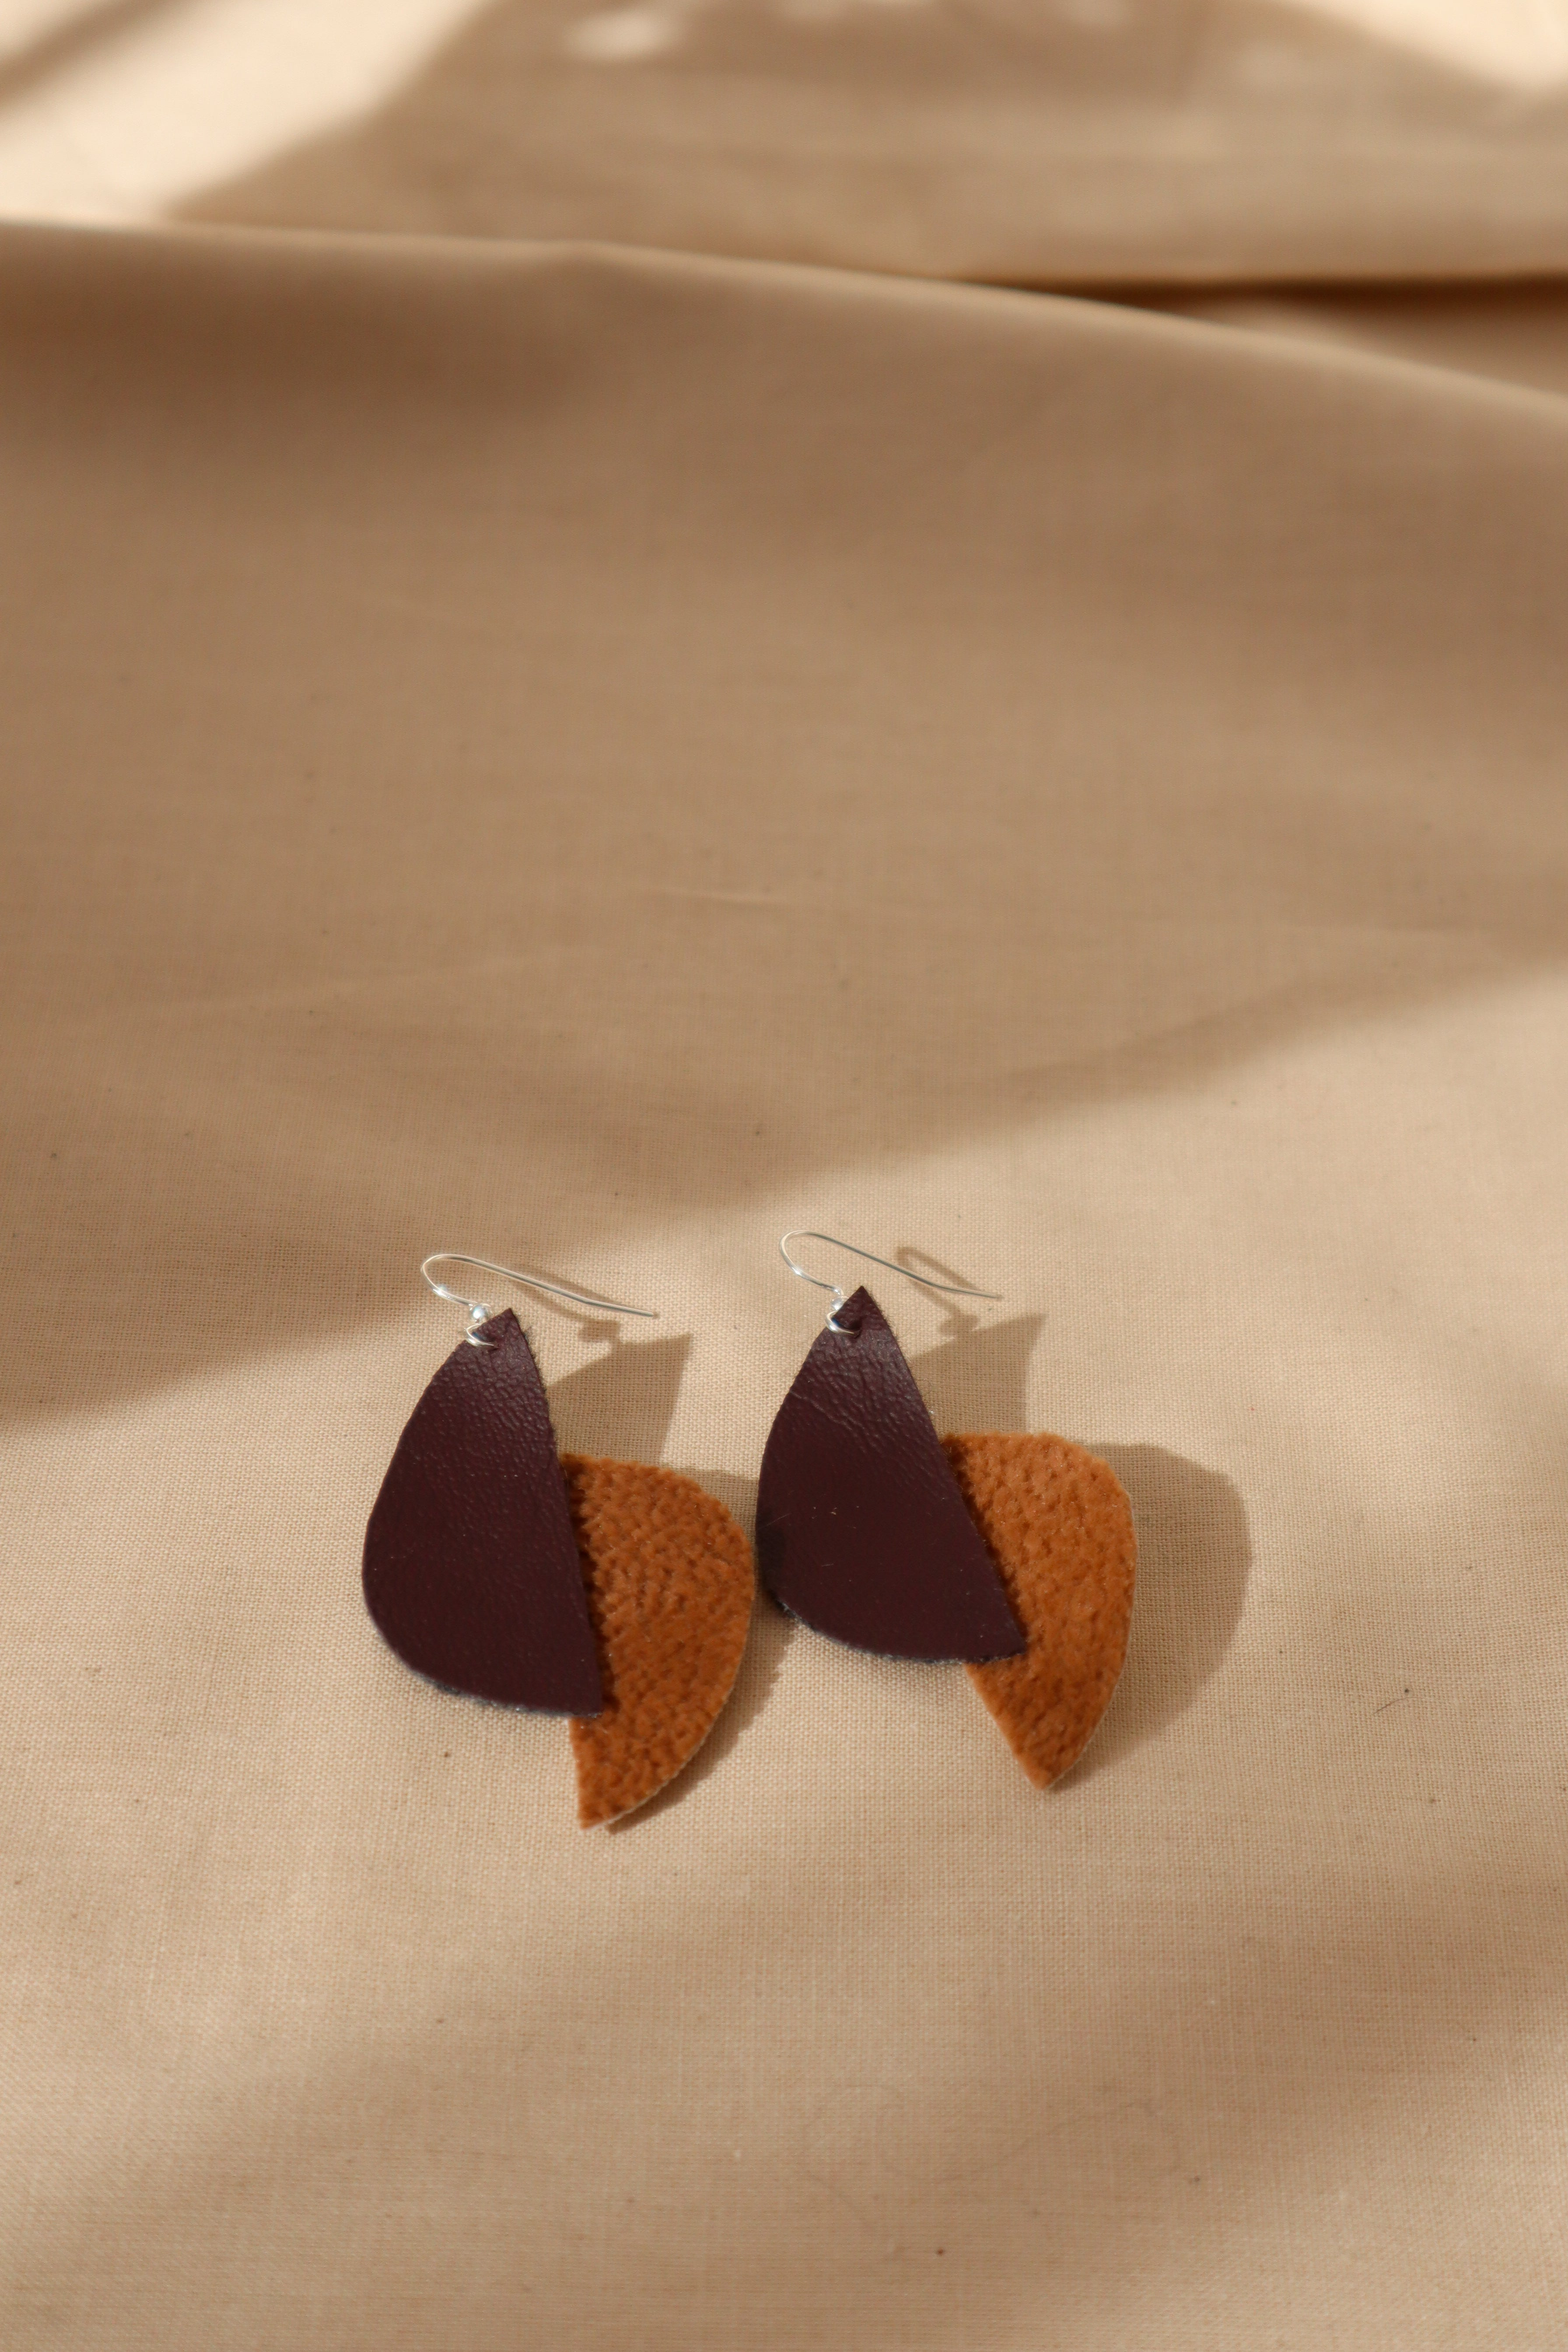 Milla earrings abstract pears in browns